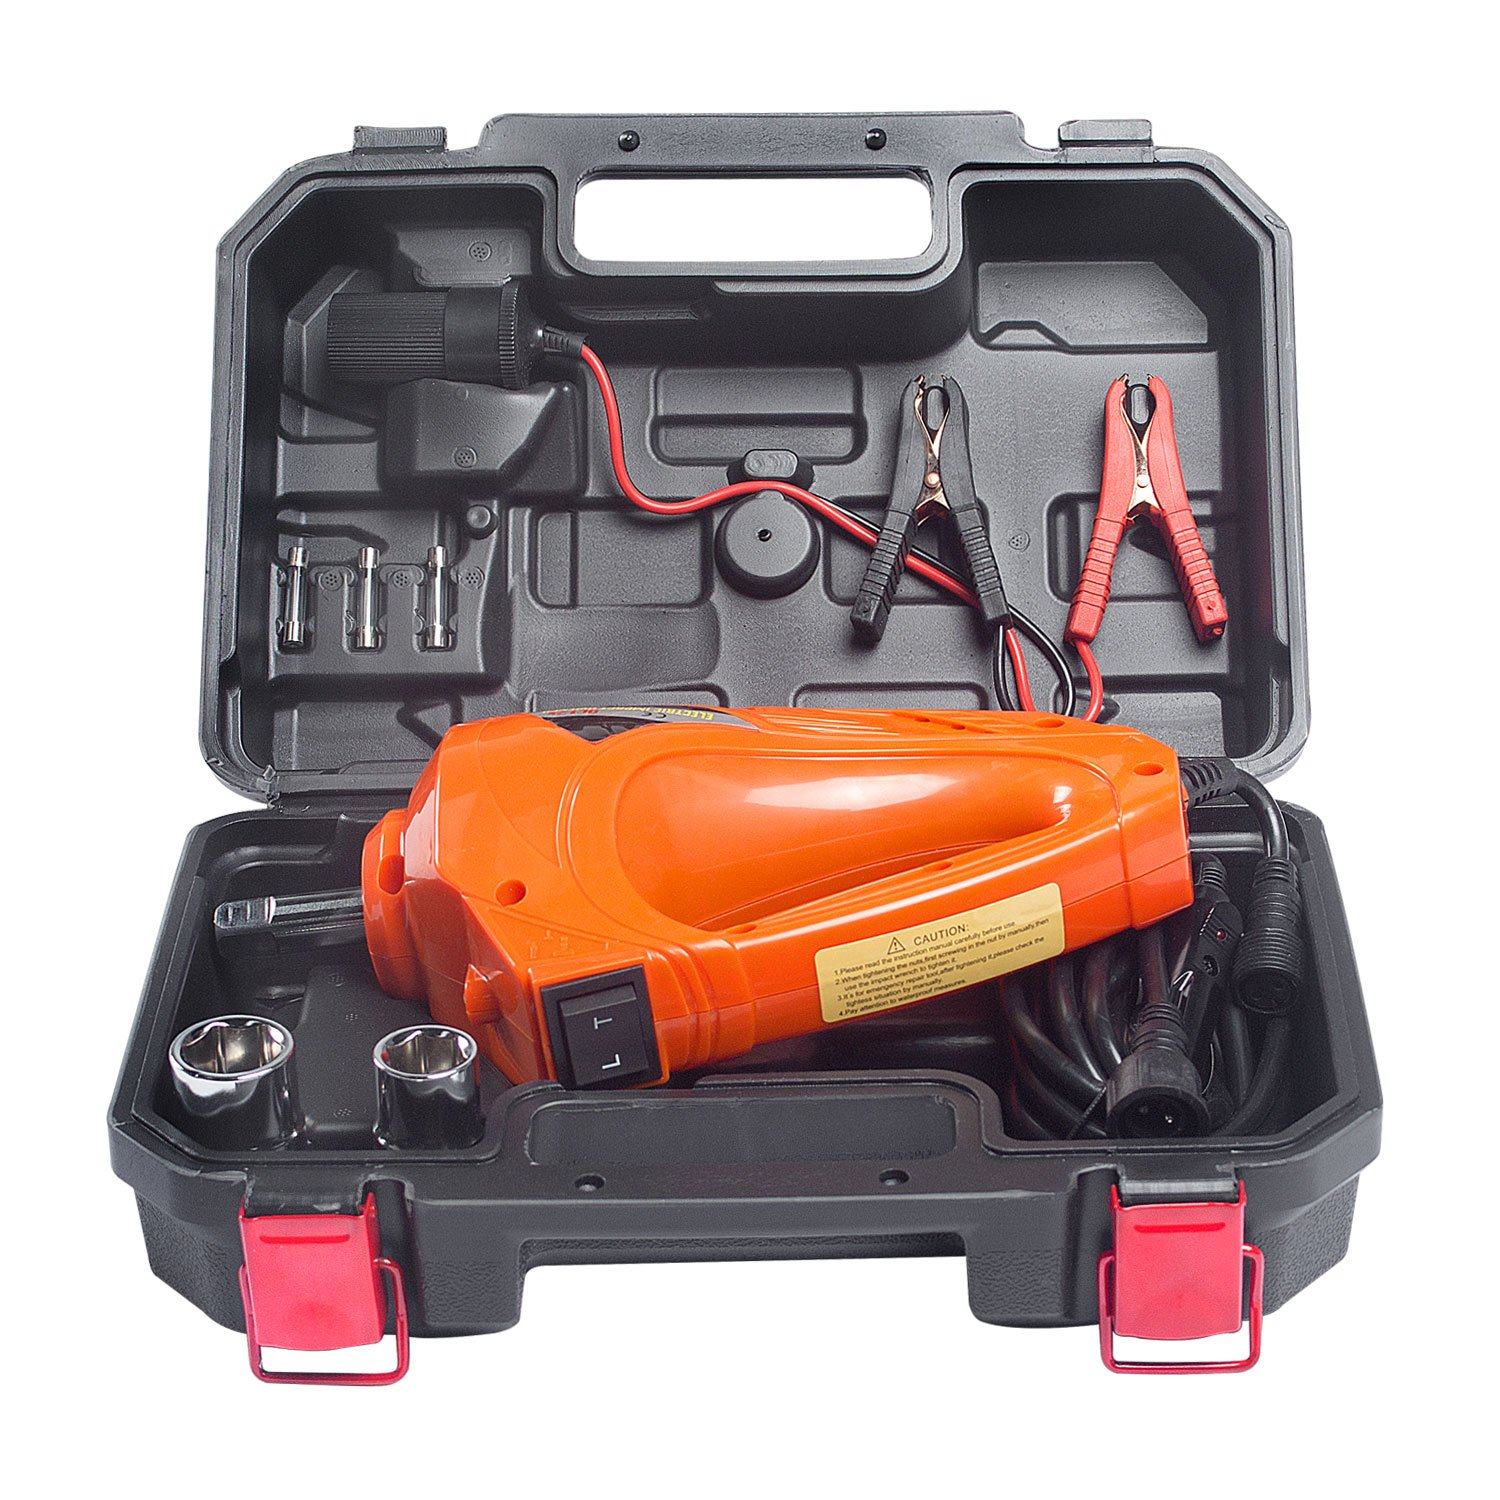 M PLUS 13Amp 480N.M 12V DC Electric Impact Wrench For Tire Replacing